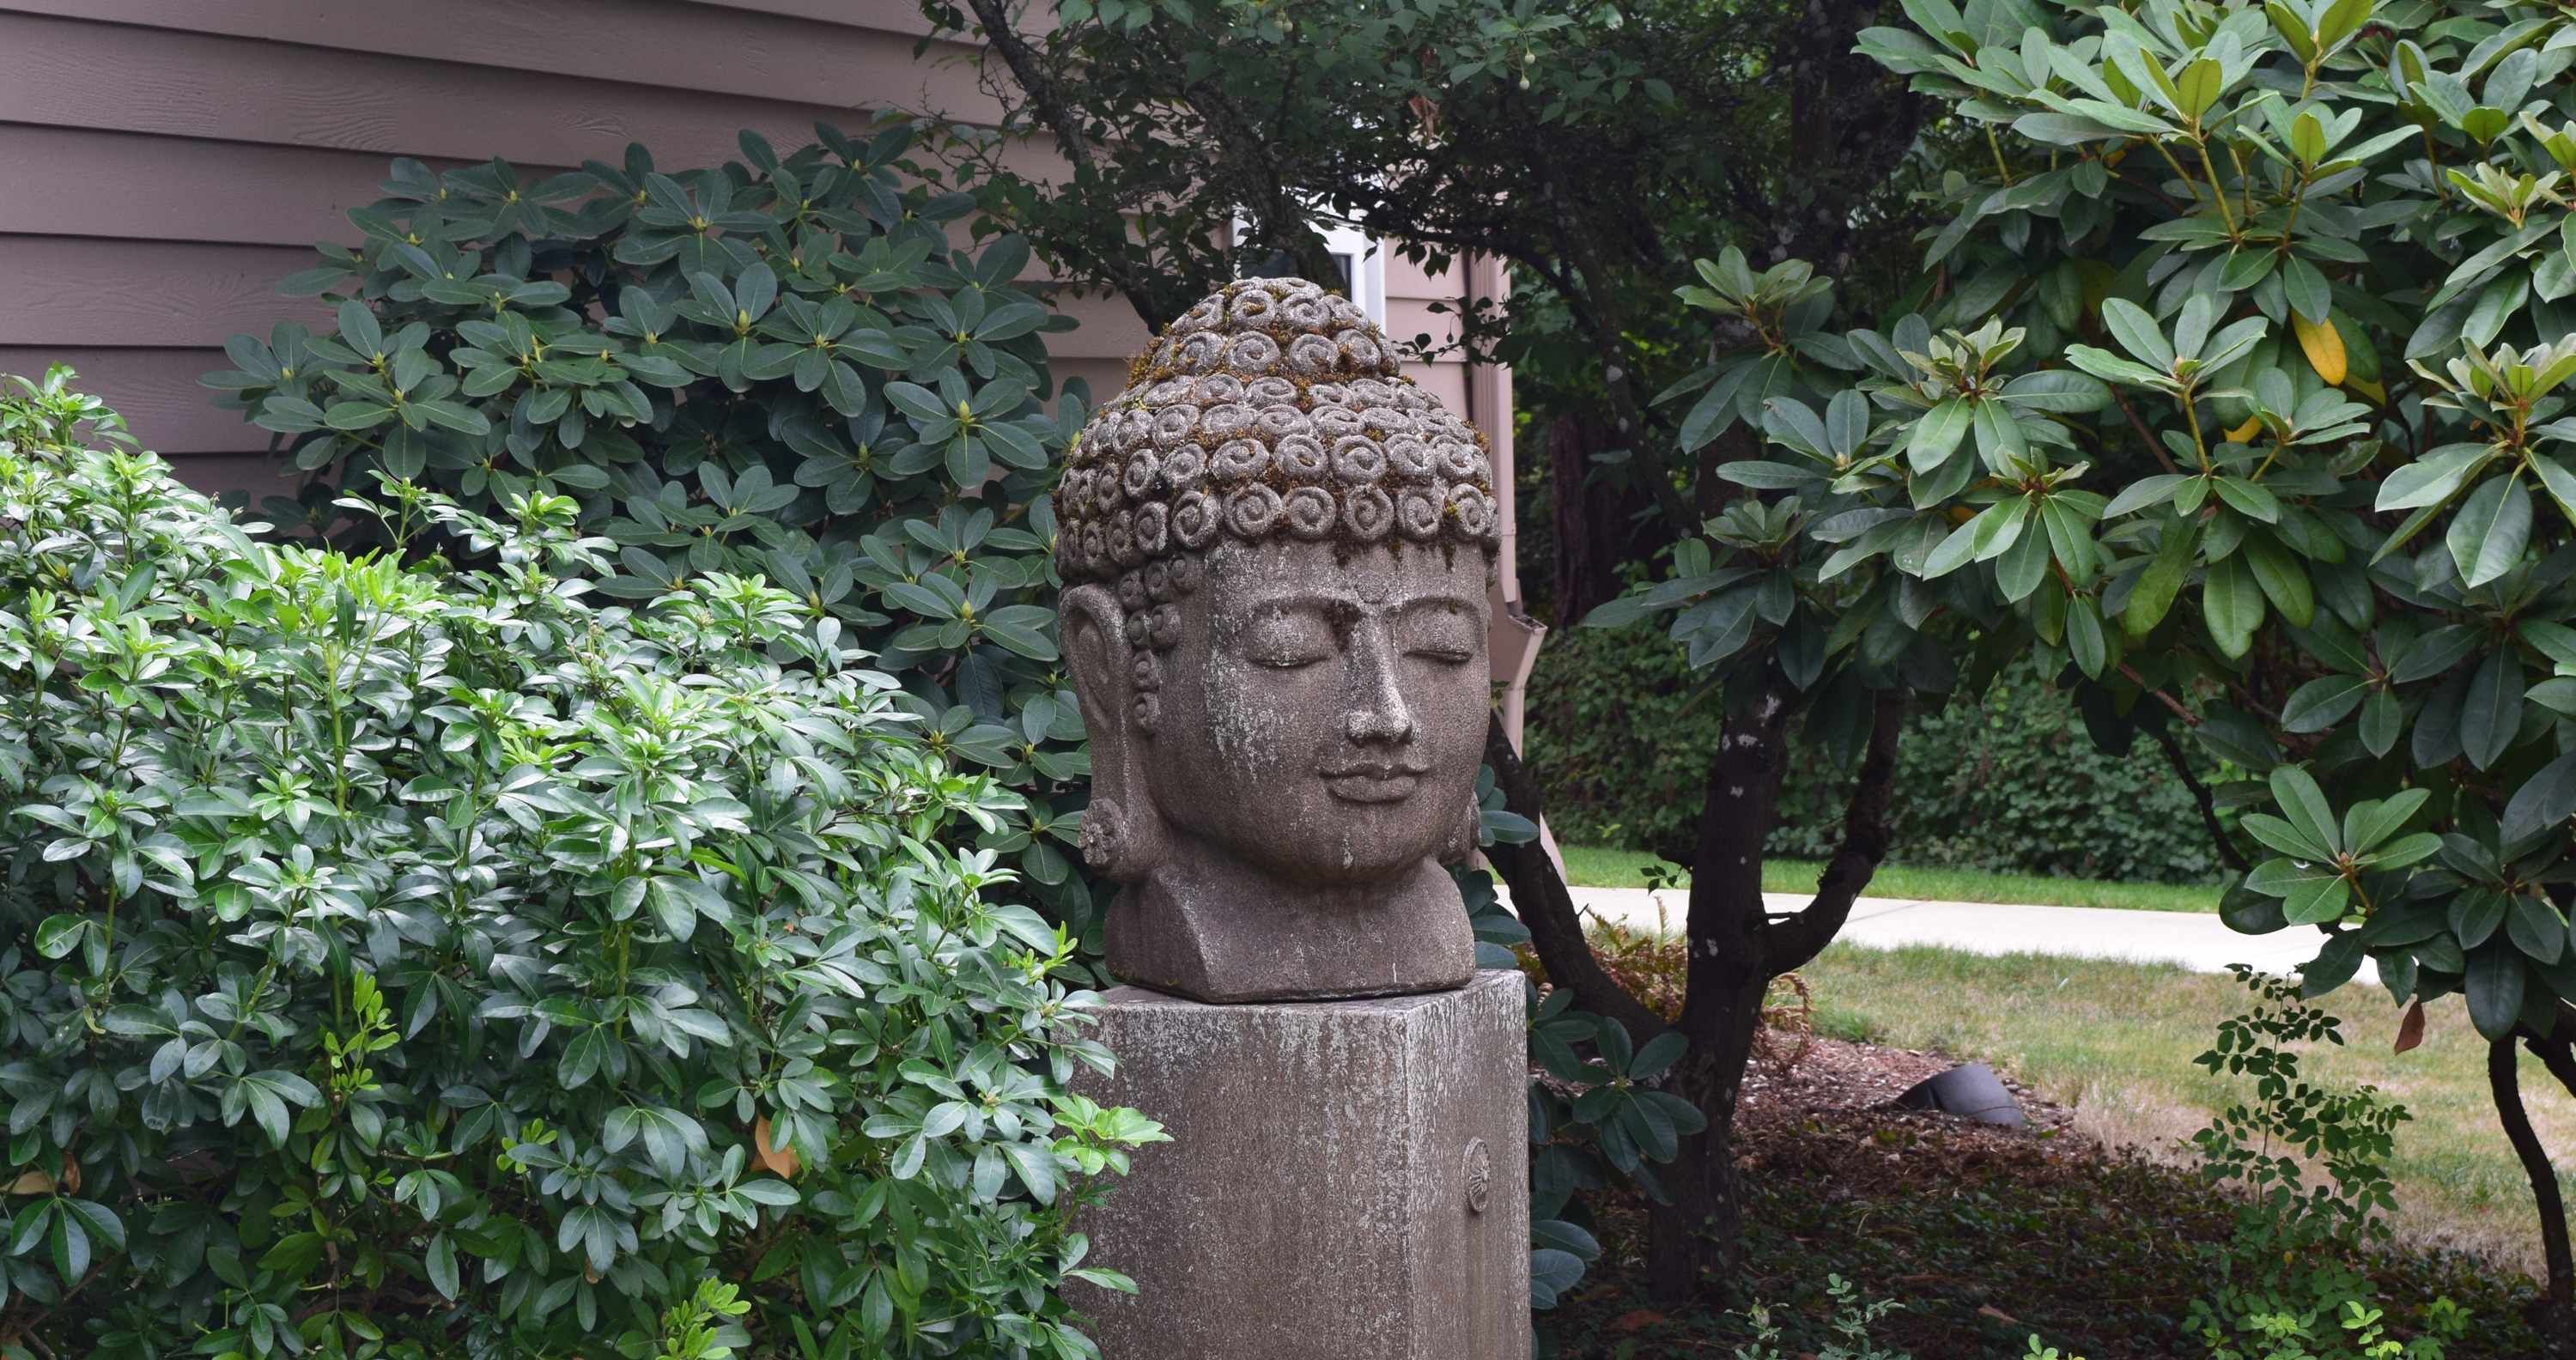 Head of Buddha statue in UUCS garden